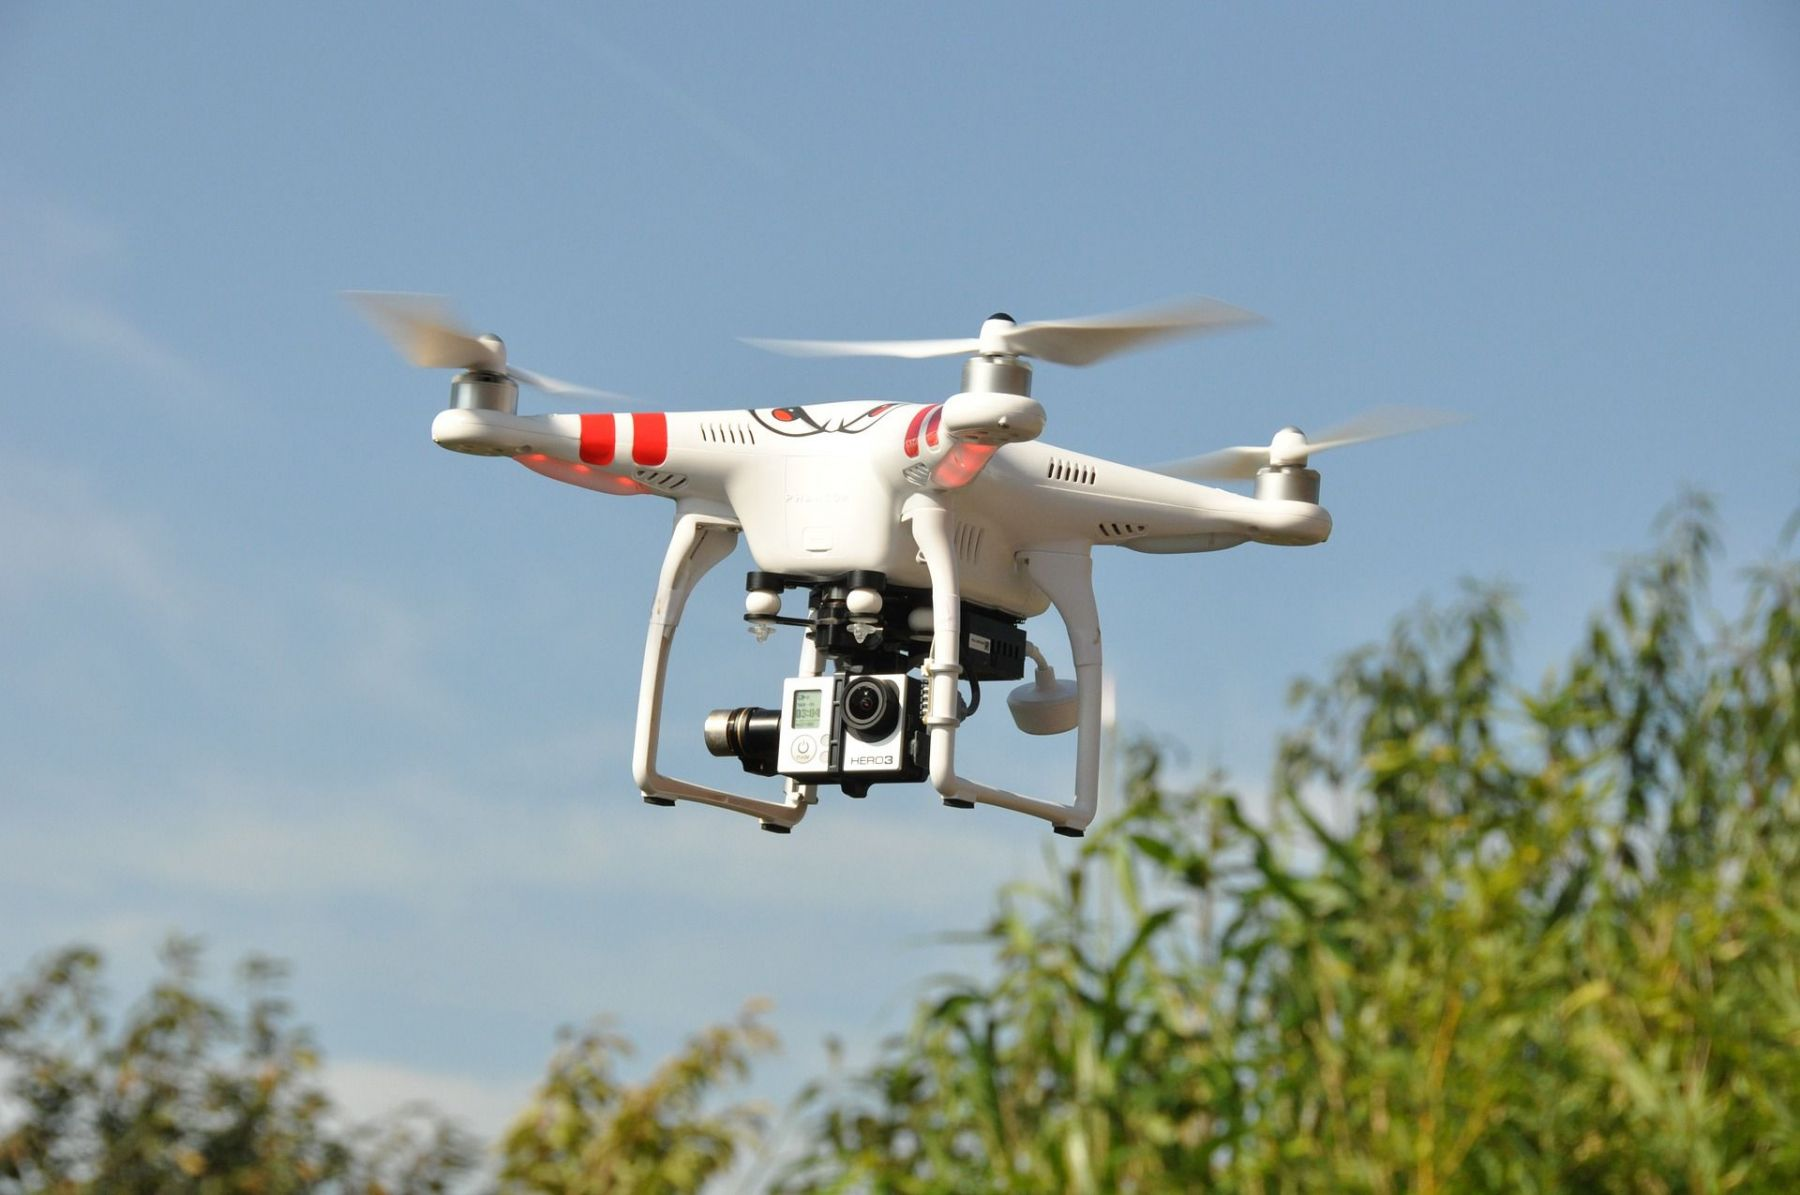 Drones finding people lost in the woods